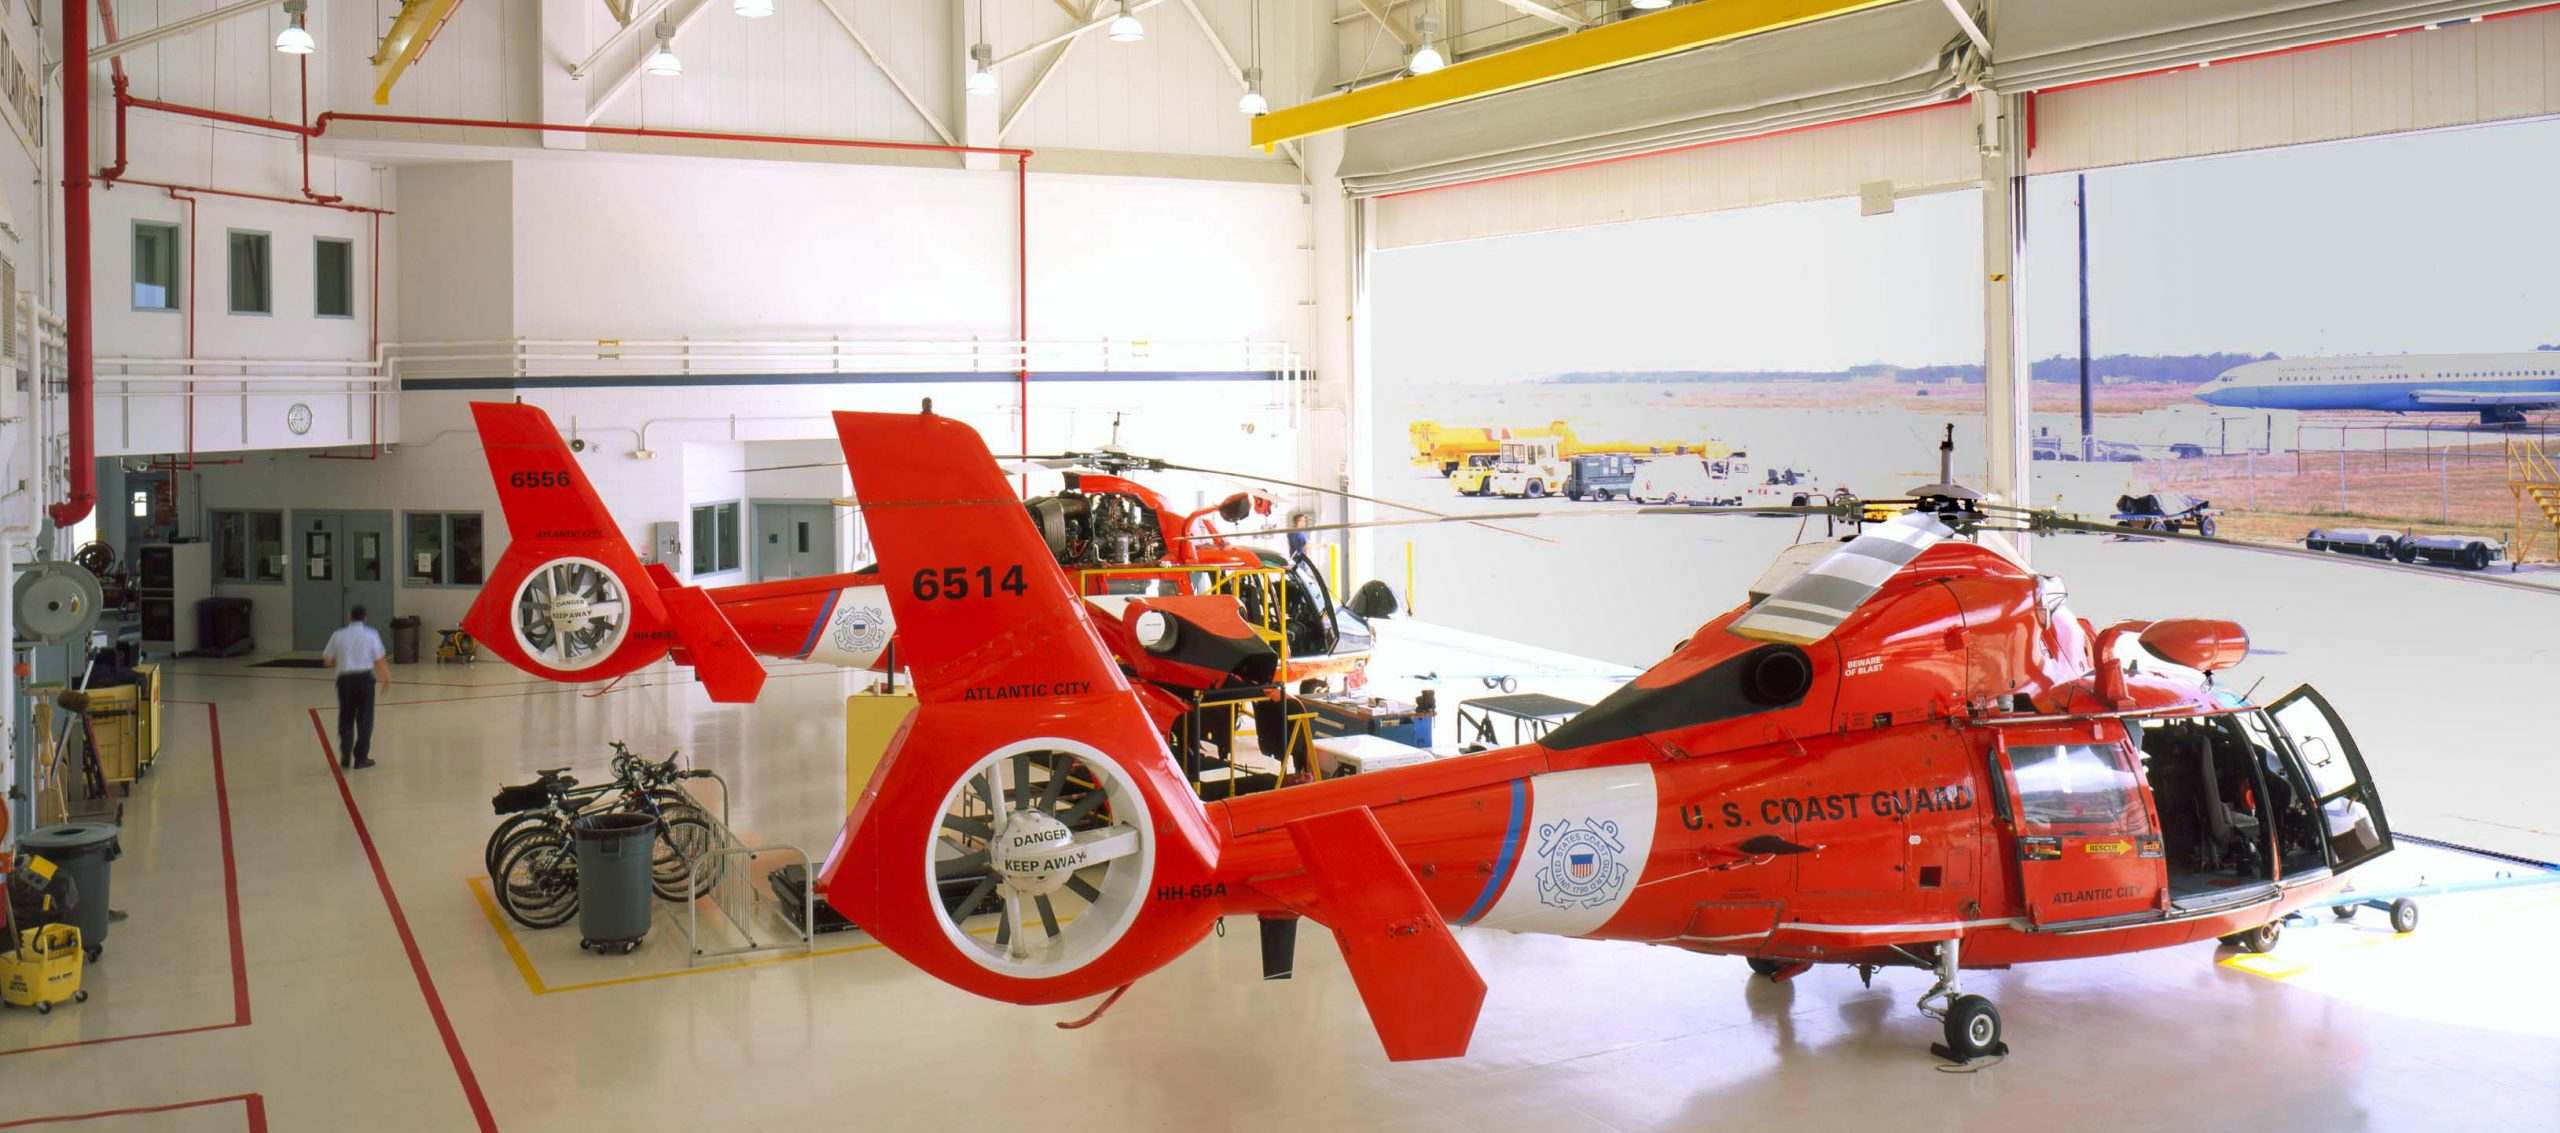 Coast guard helicopters in hangar